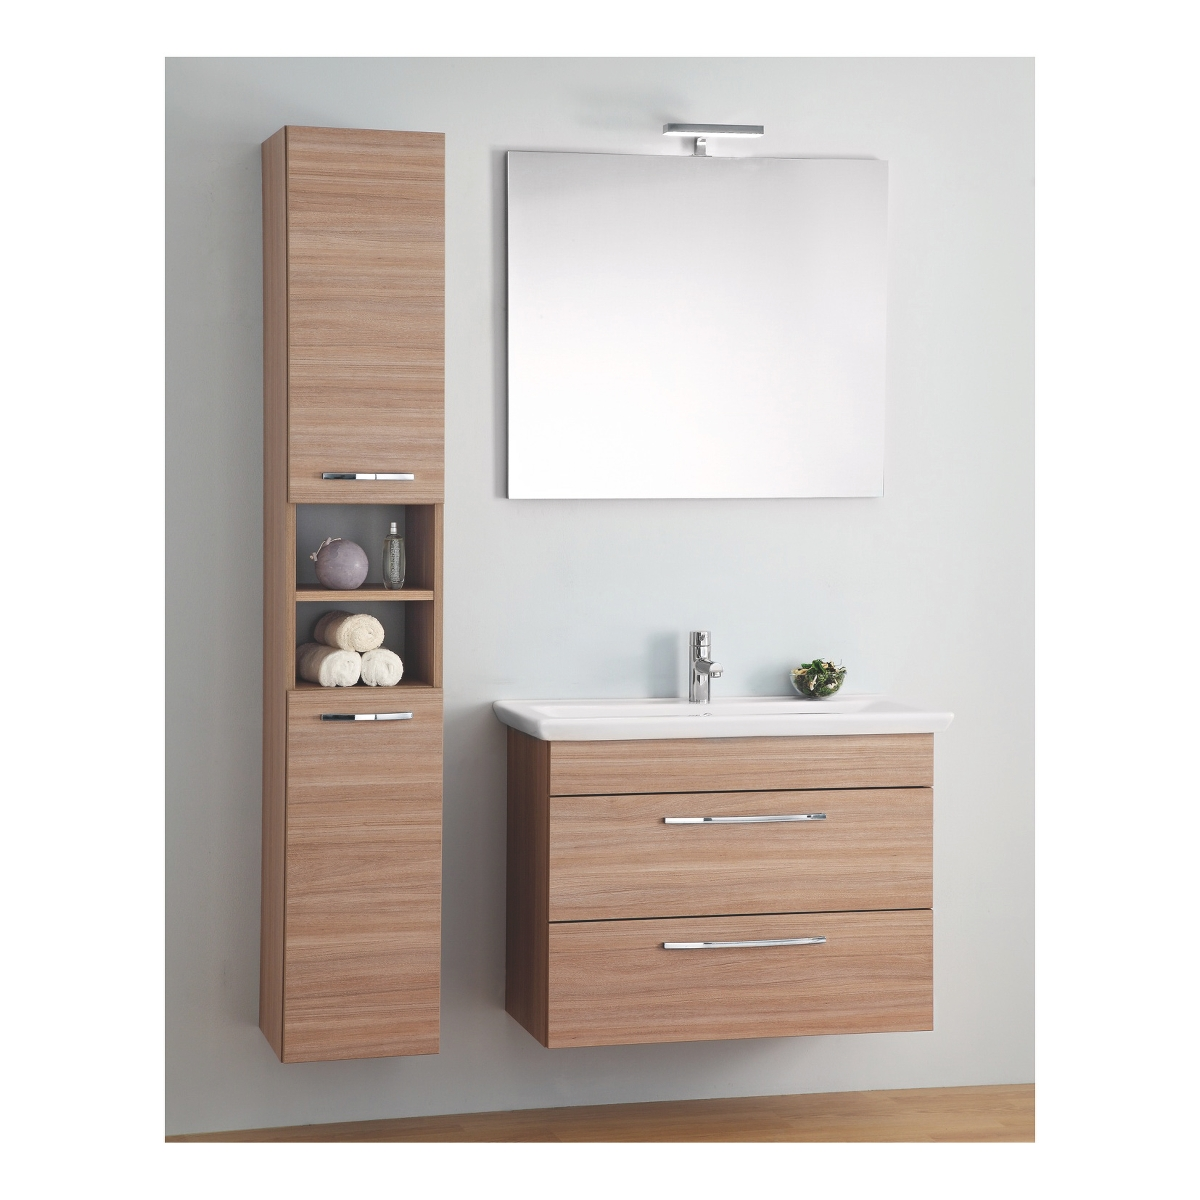 muebles de lavabo - leroy merlin | decor | bathroom | pinterest - Leroy Merlin Mobile Bagno Laura